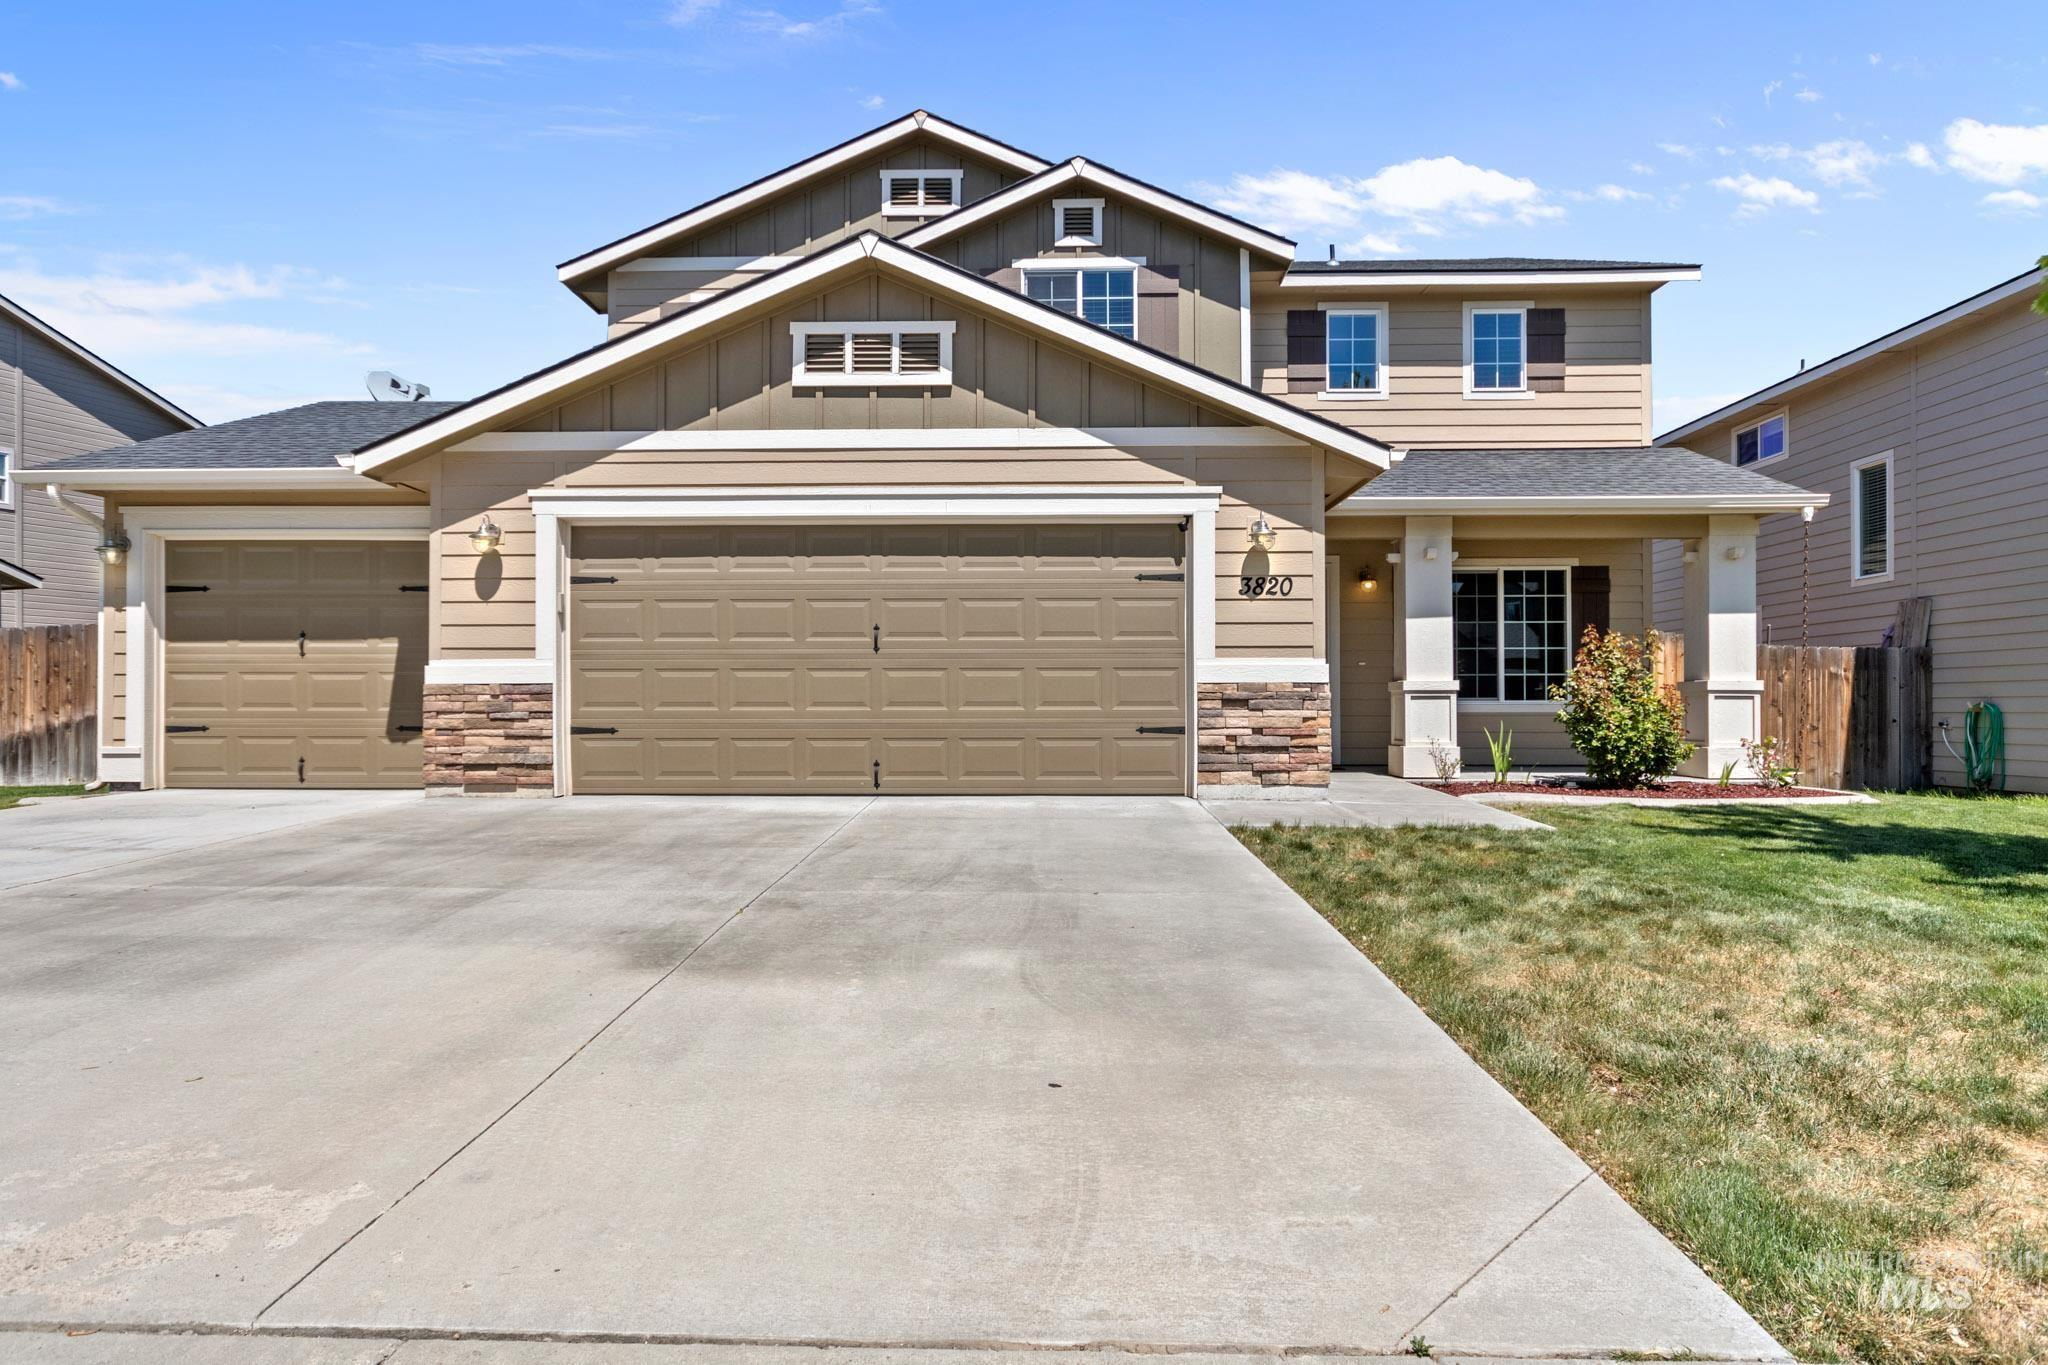 3820 S. Barletta Way Property Photo - Meridian, ID real estate listing